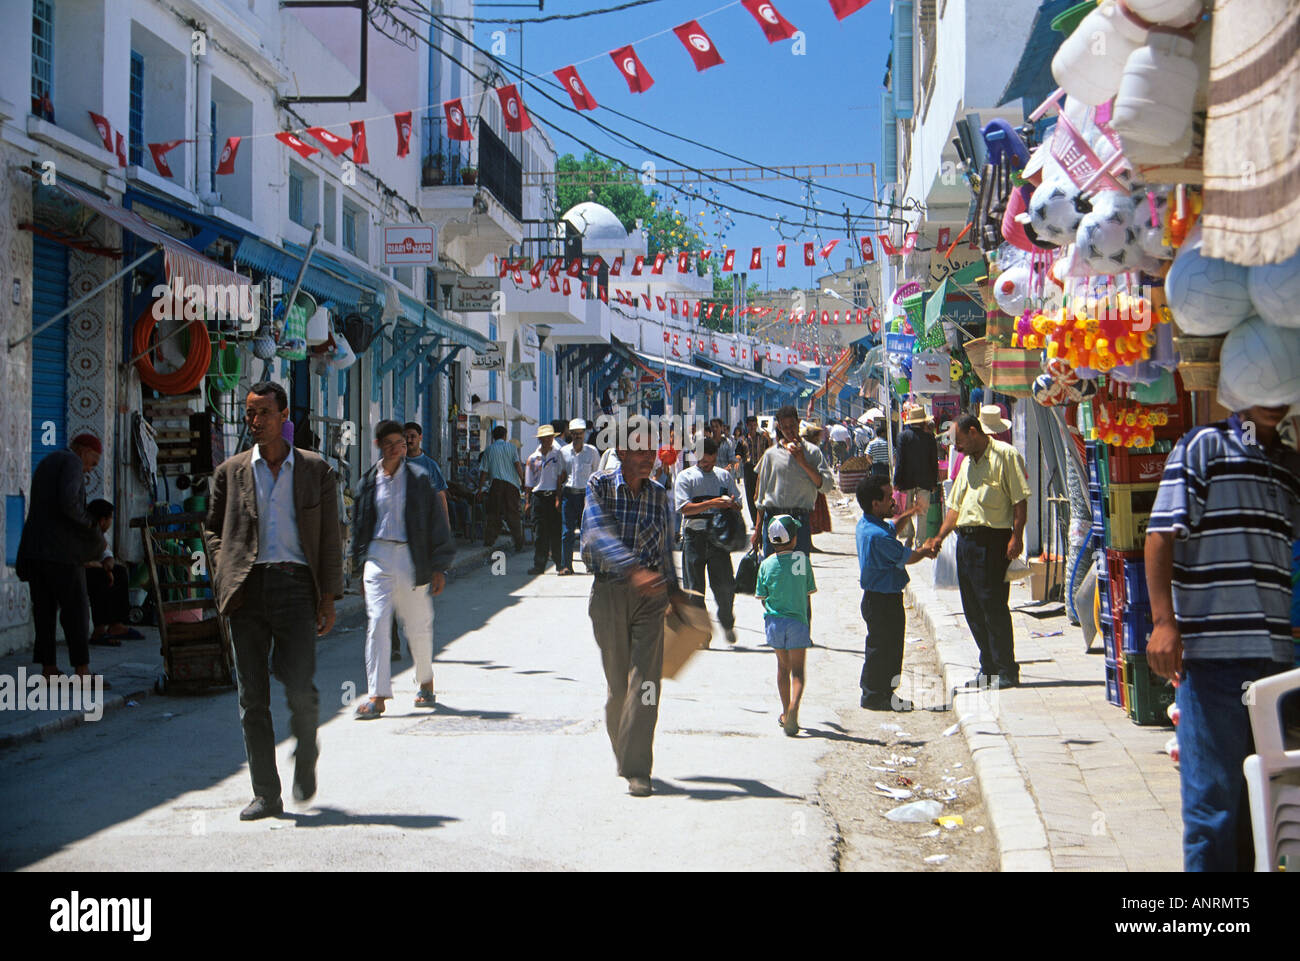 Local shoppers passing along in front of the shops strung about with colourful goods for sale on the Rue Kheireddine Stock Photo